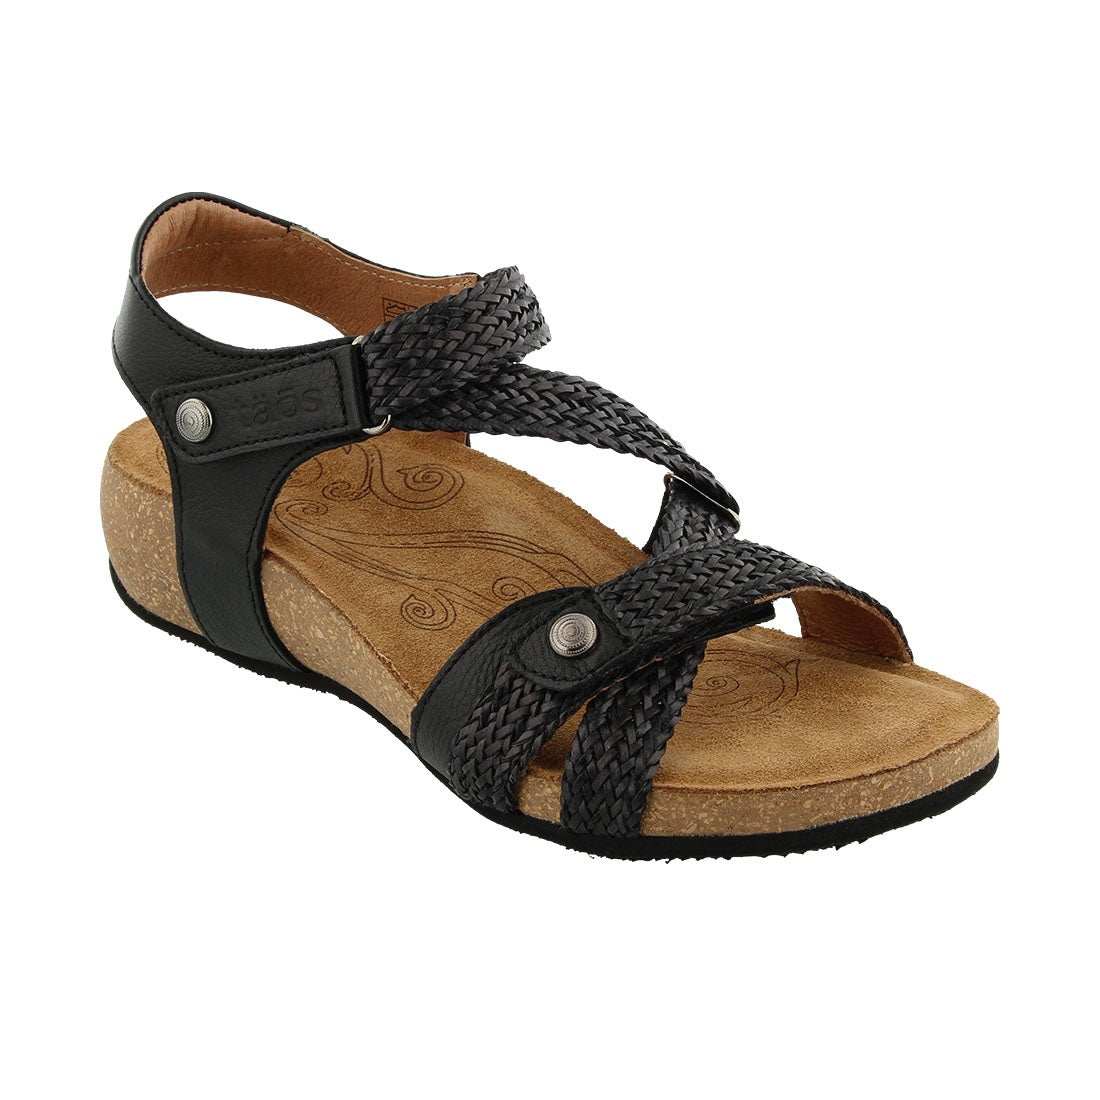 Women's Taos Trulie - Black